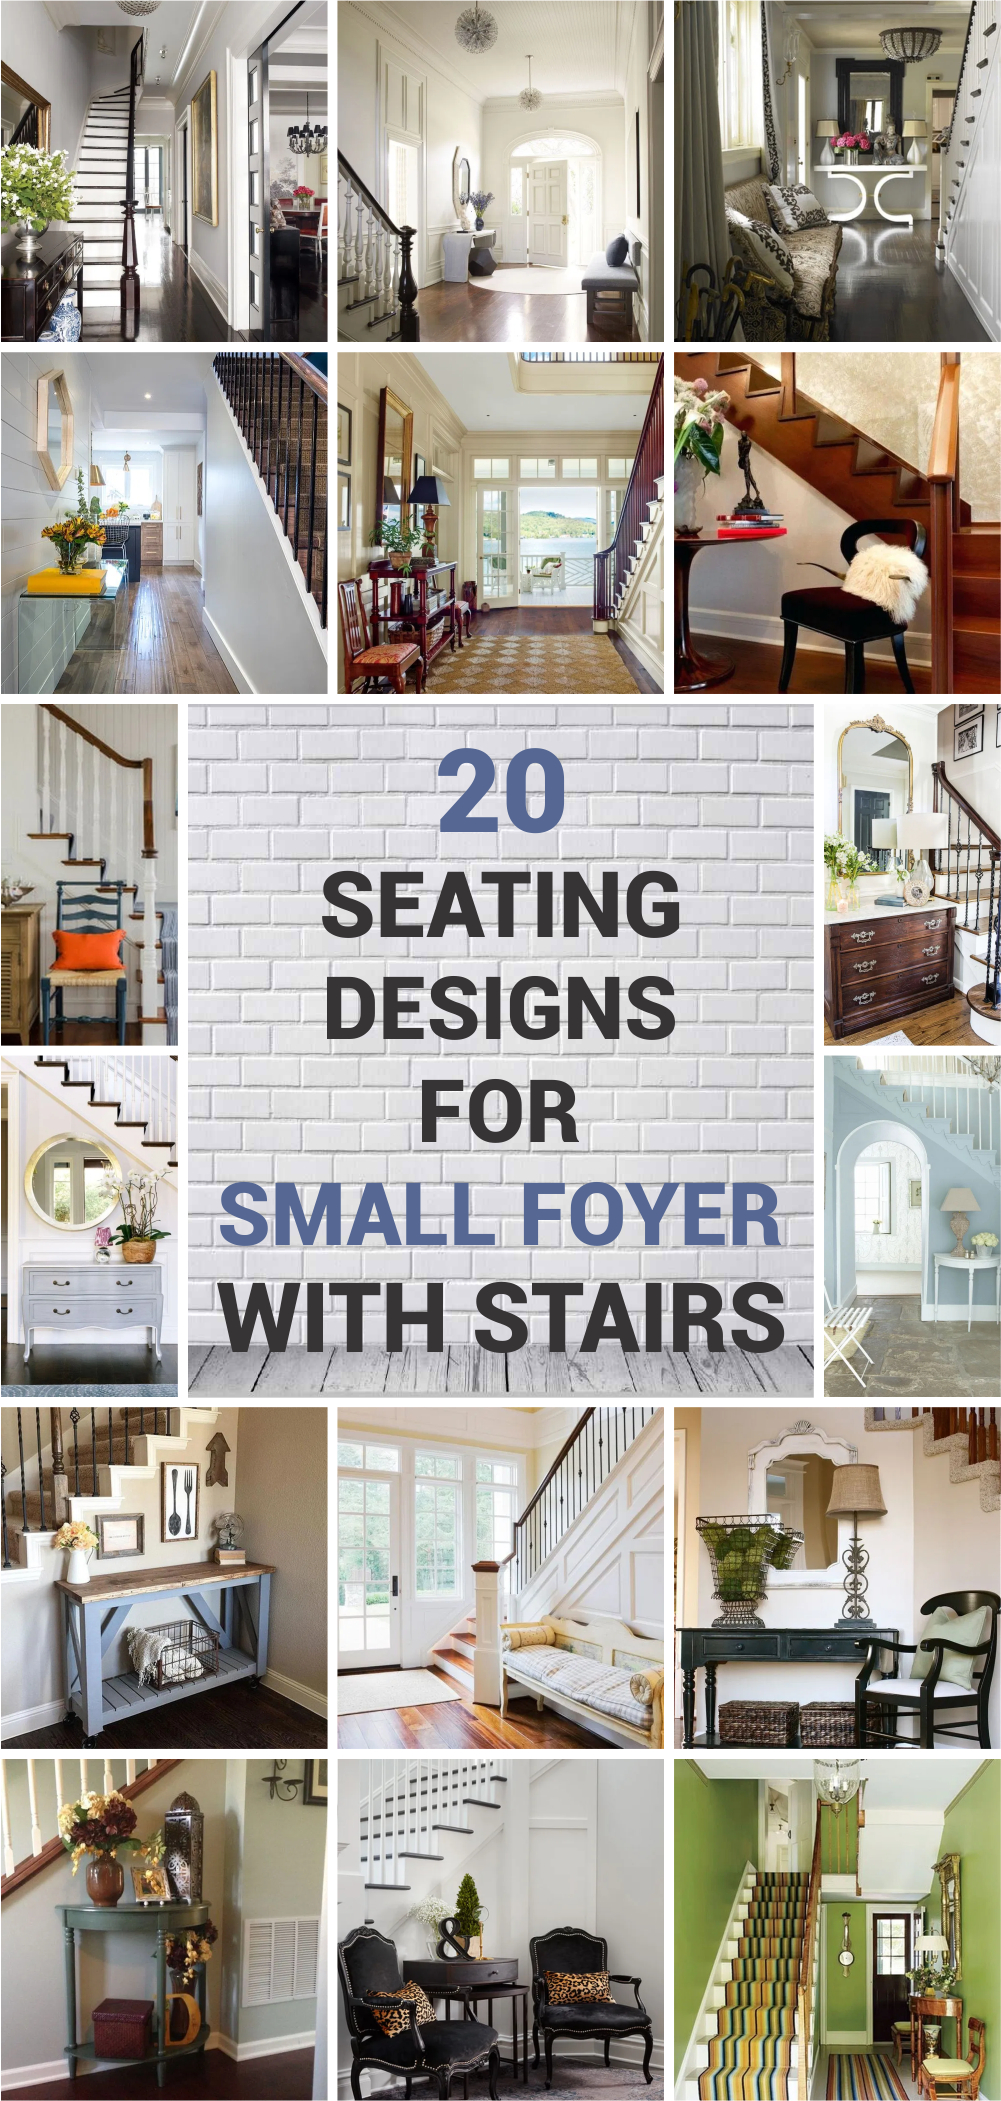 20 seating designs for small foyer with stairs 1